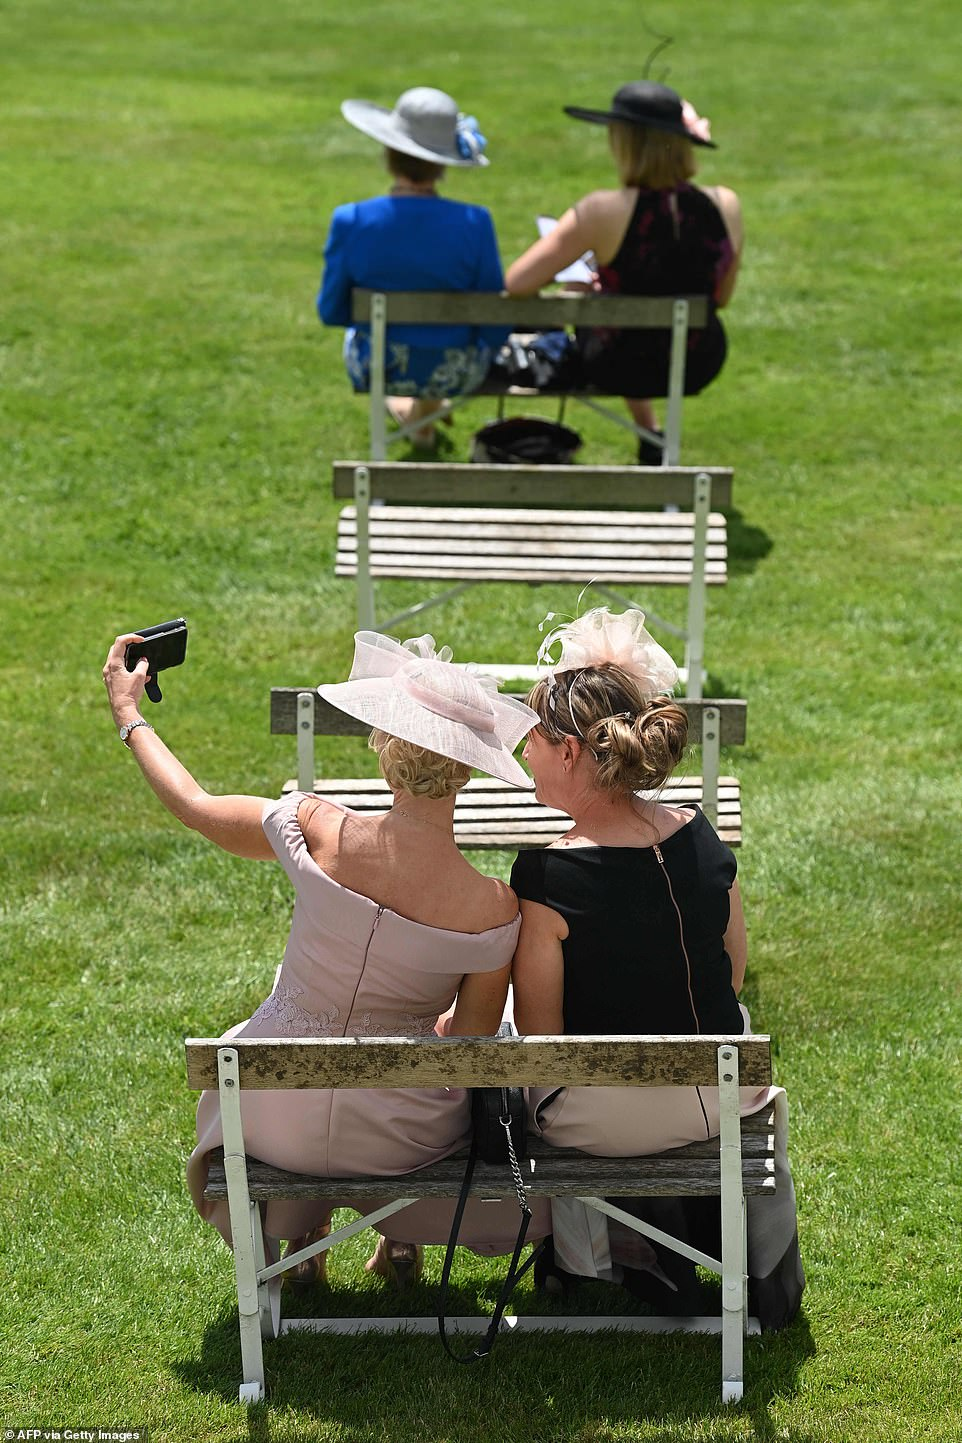 Let me take a selfie! Two women posed for a selfie while sporting glamorous hats and gowns at the race course